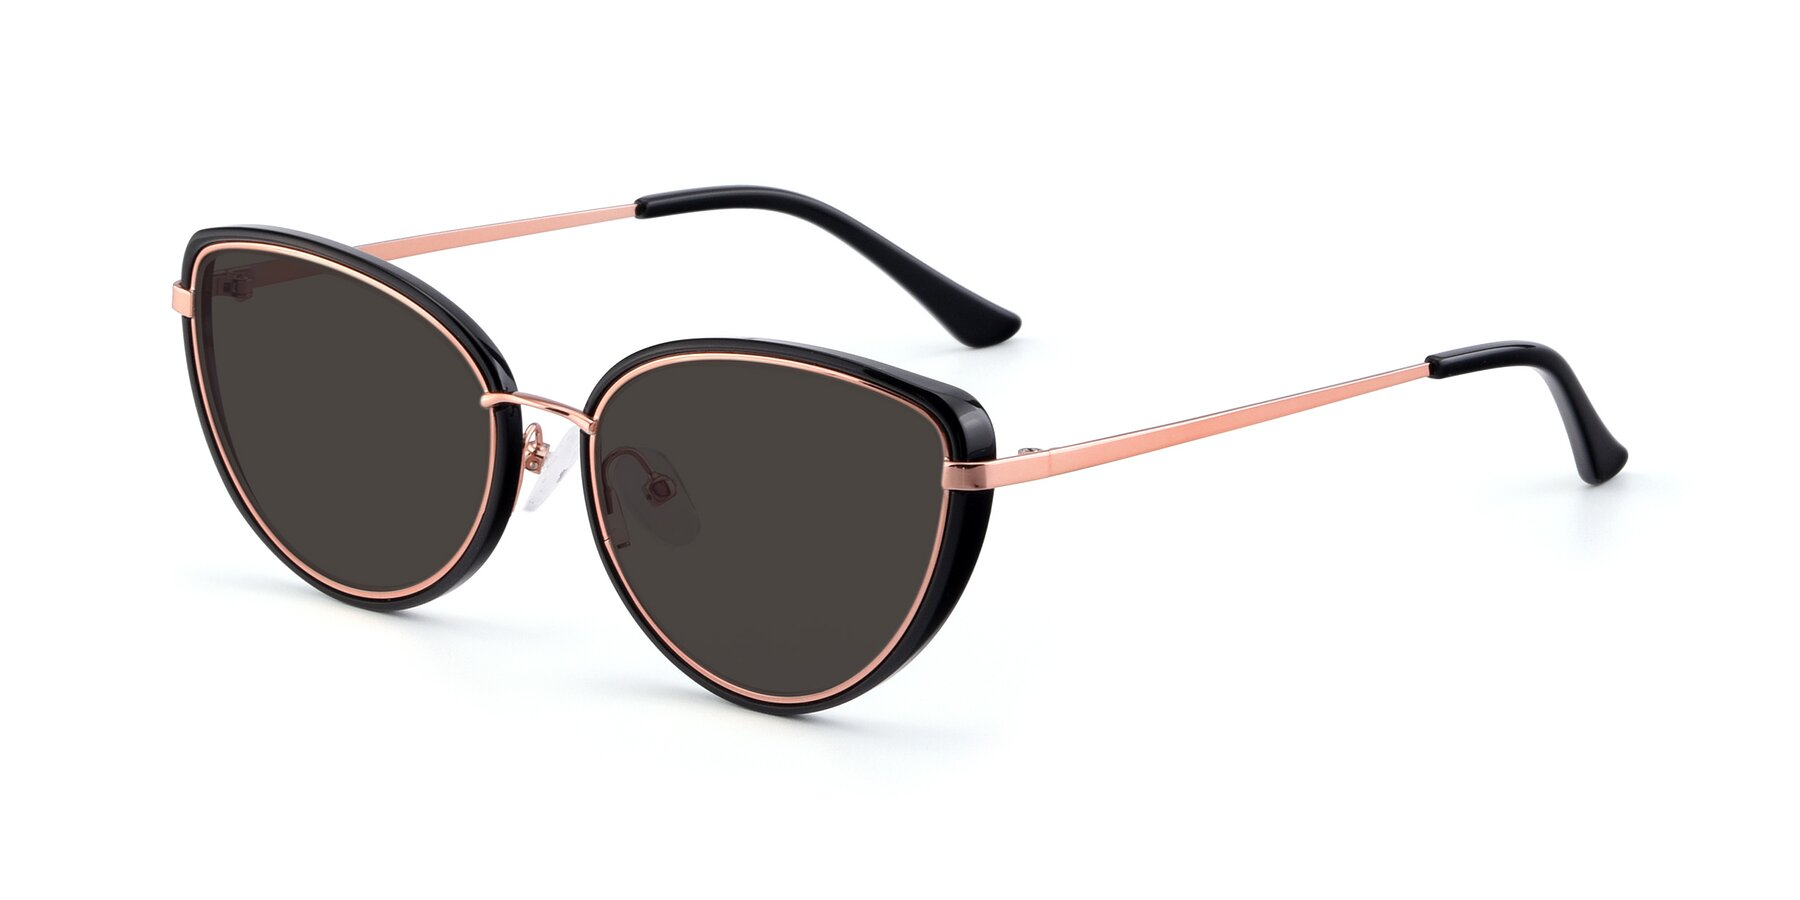 Angle of 17706 in Black-Rose Gold with Gray Tinted Lenses